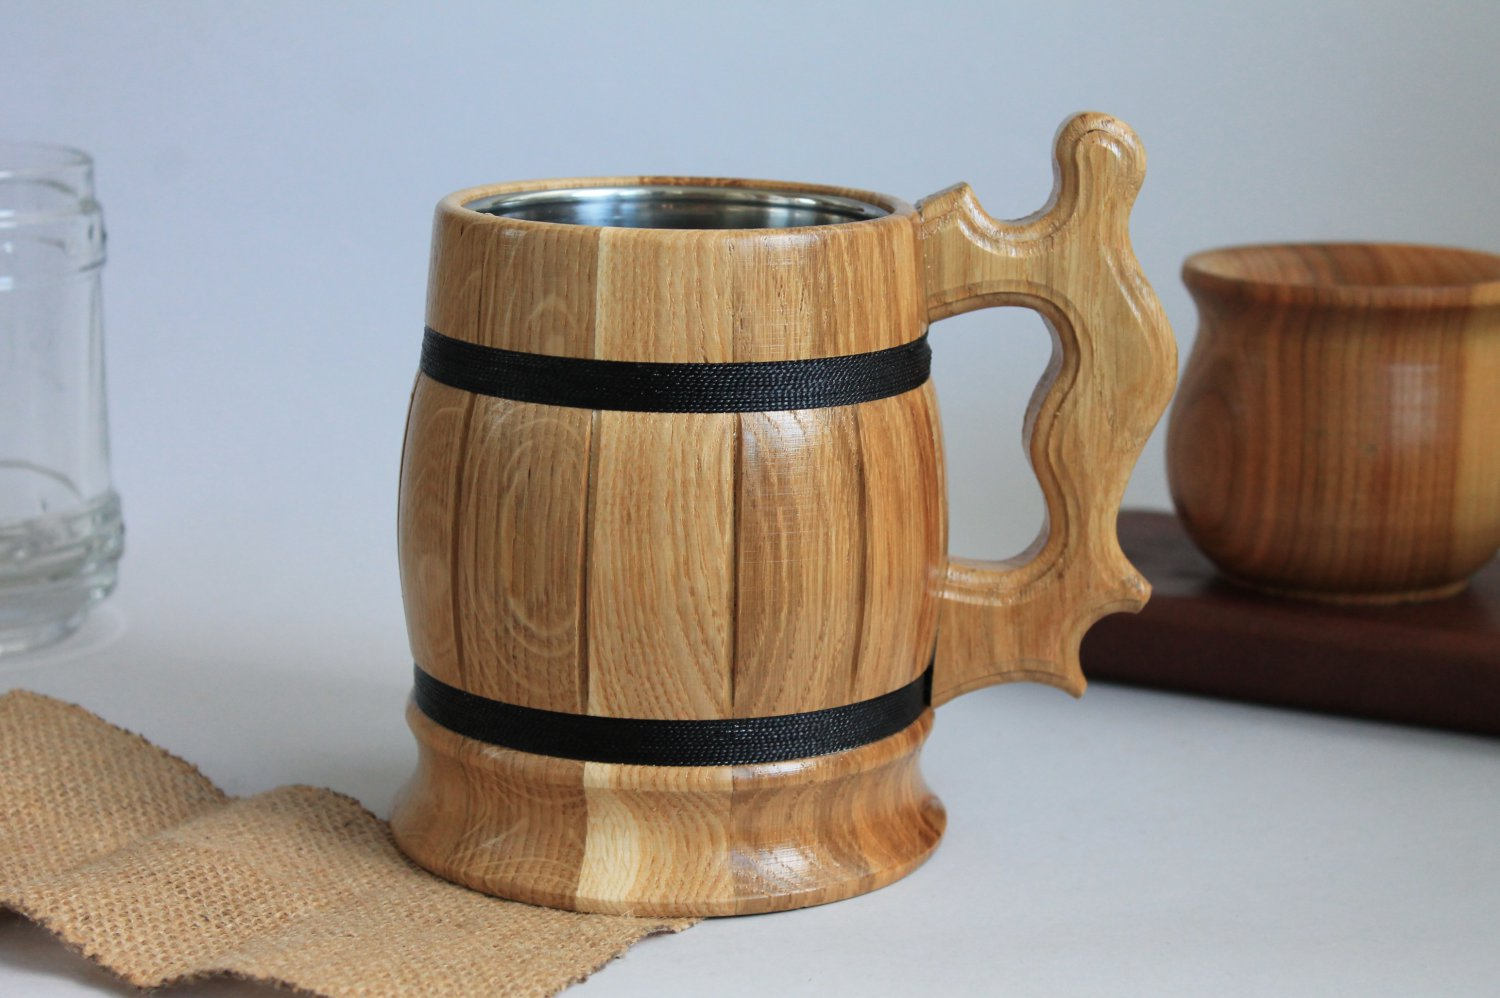 Large exclusive Wooden beer mug with stainless steel cup inside